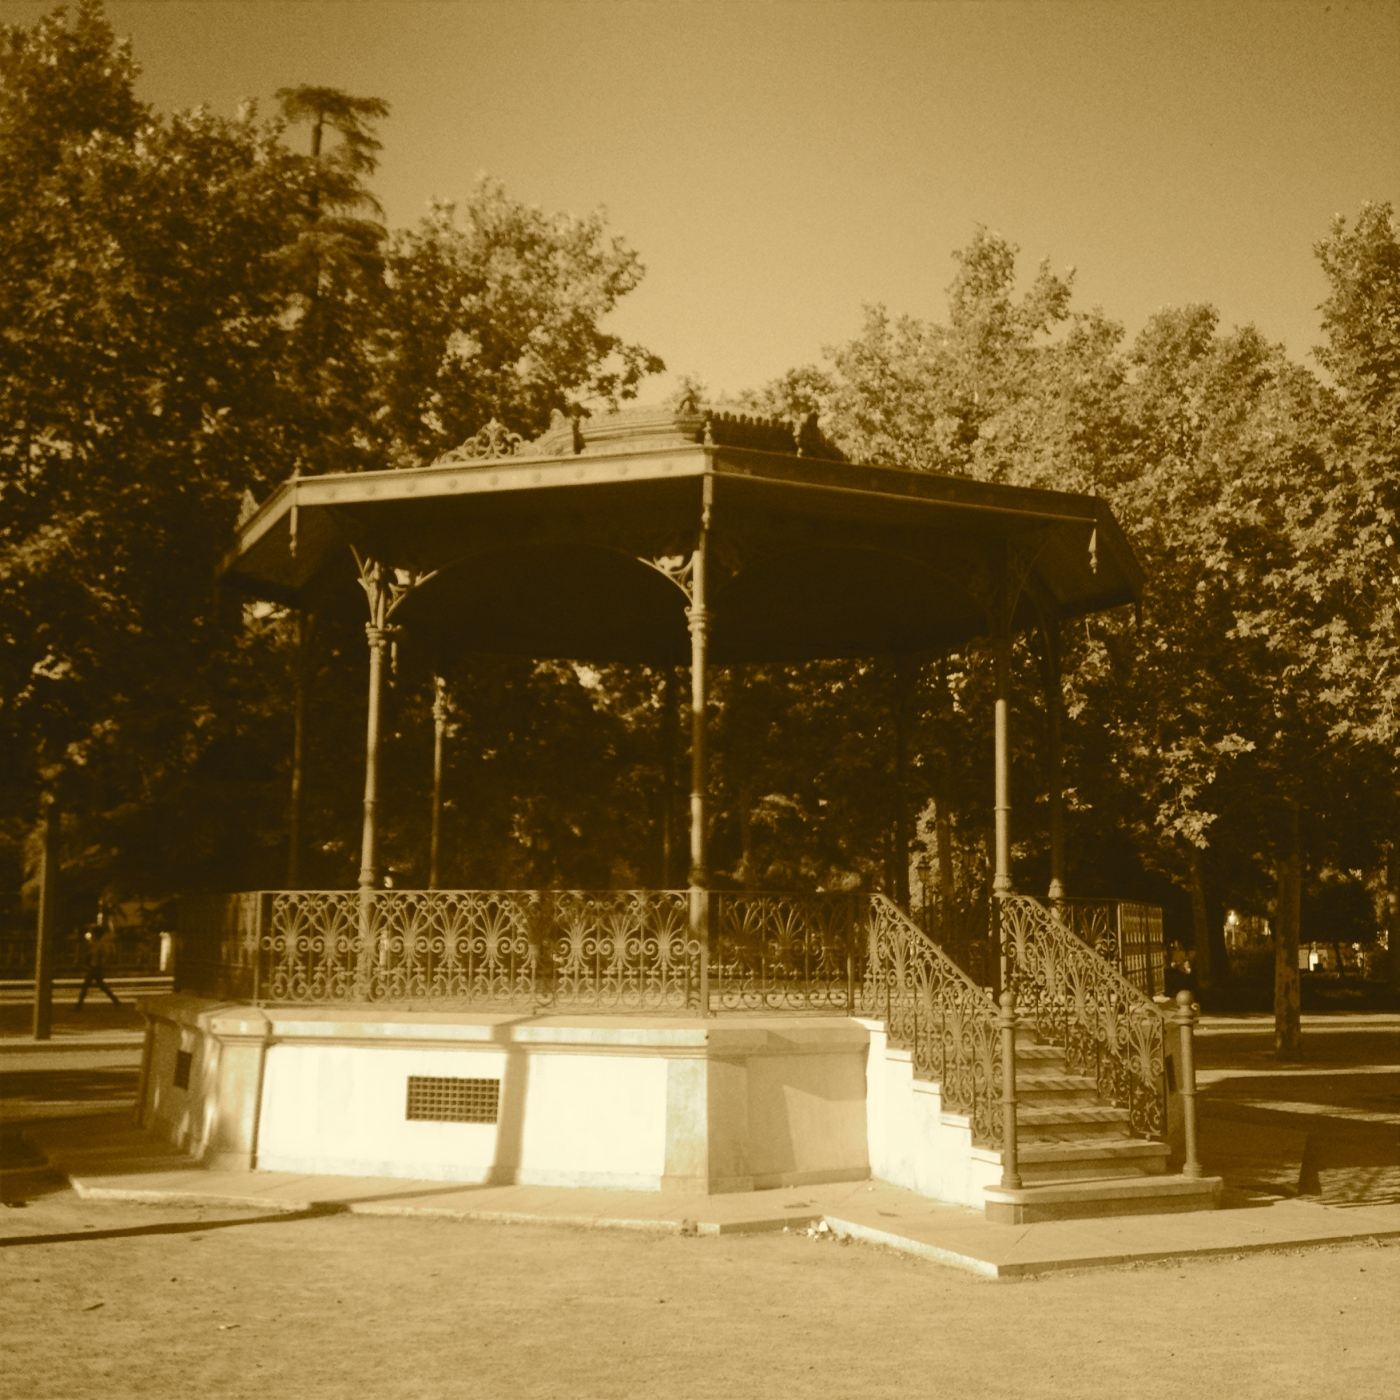 The Empty Bandstand